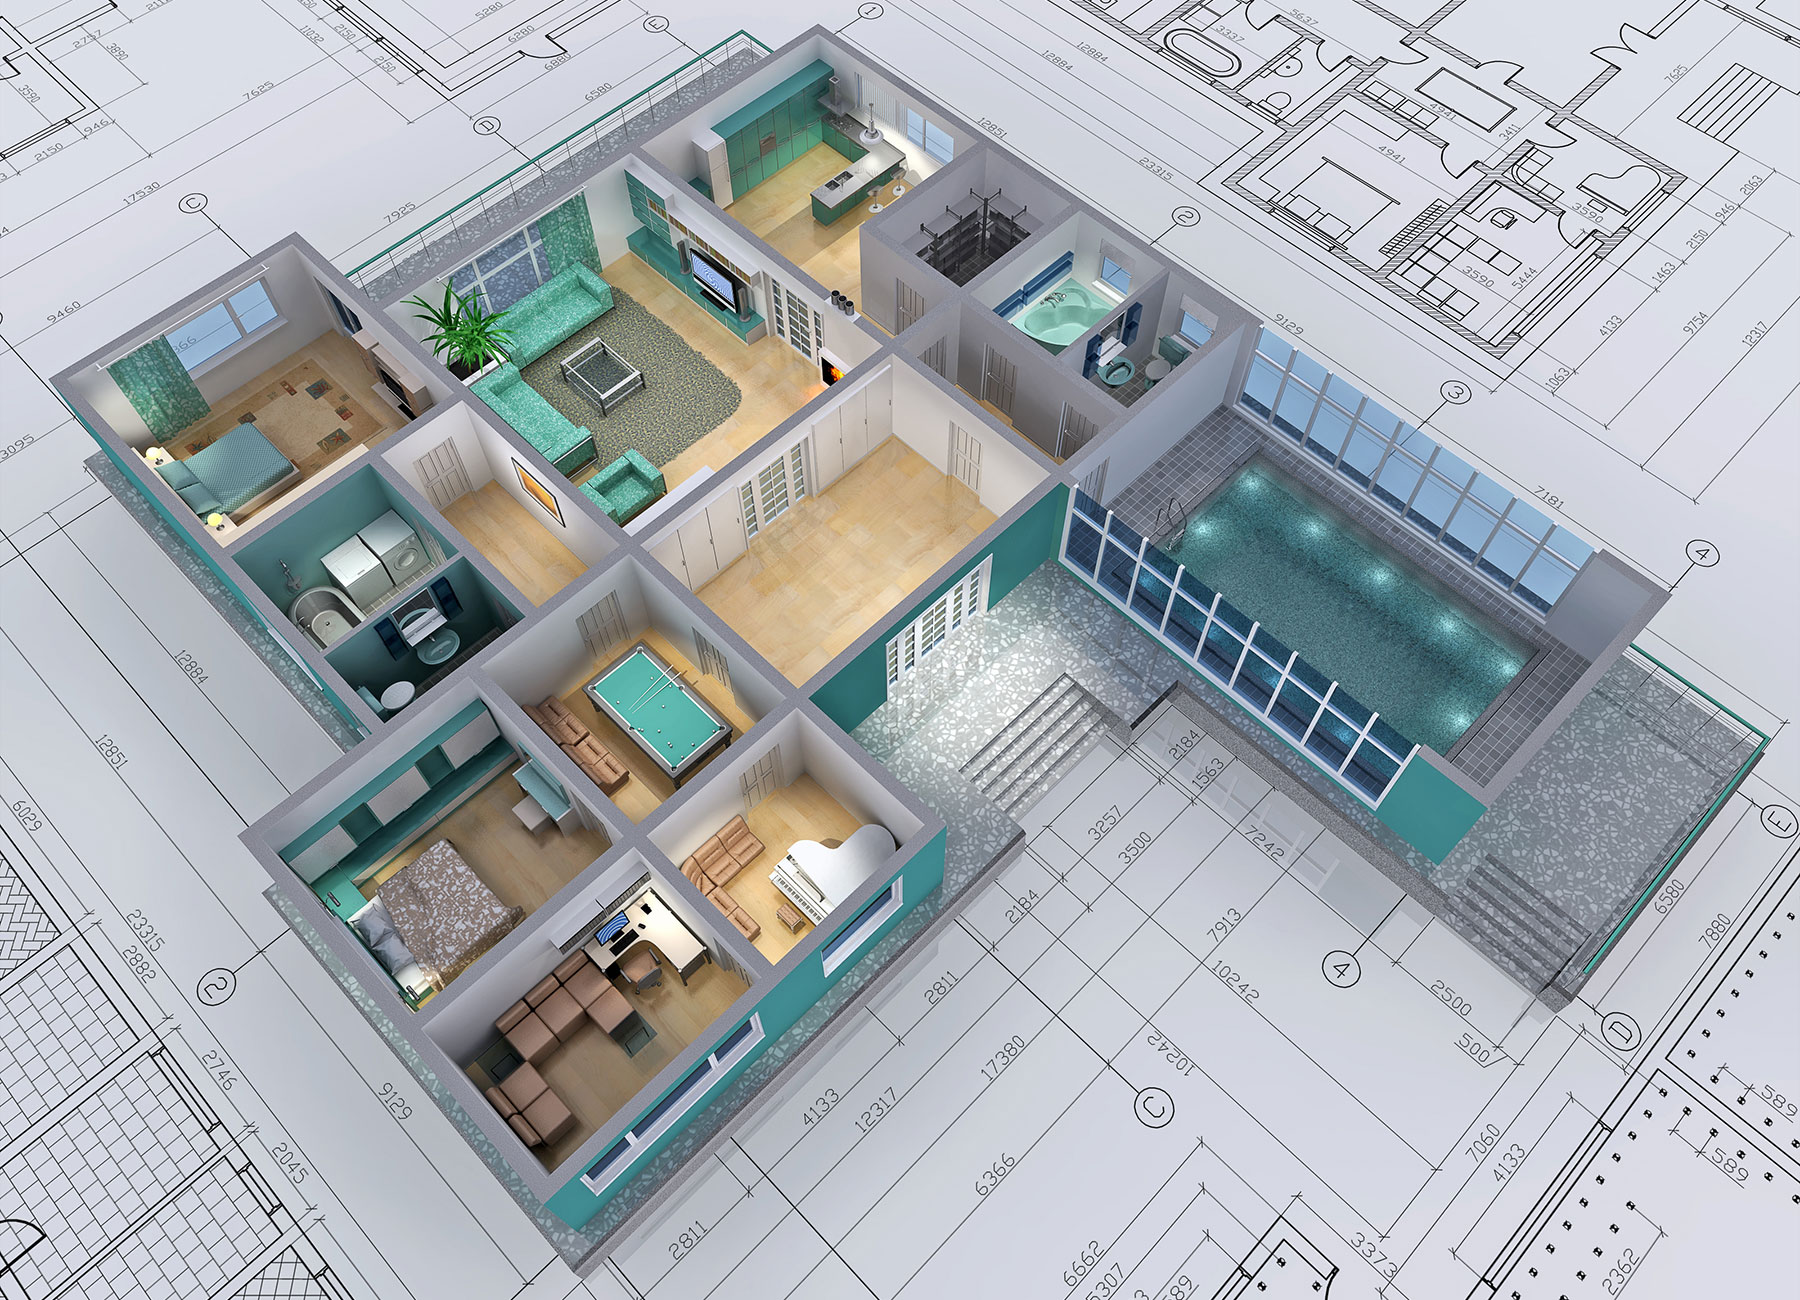 3D floor plan and drawing